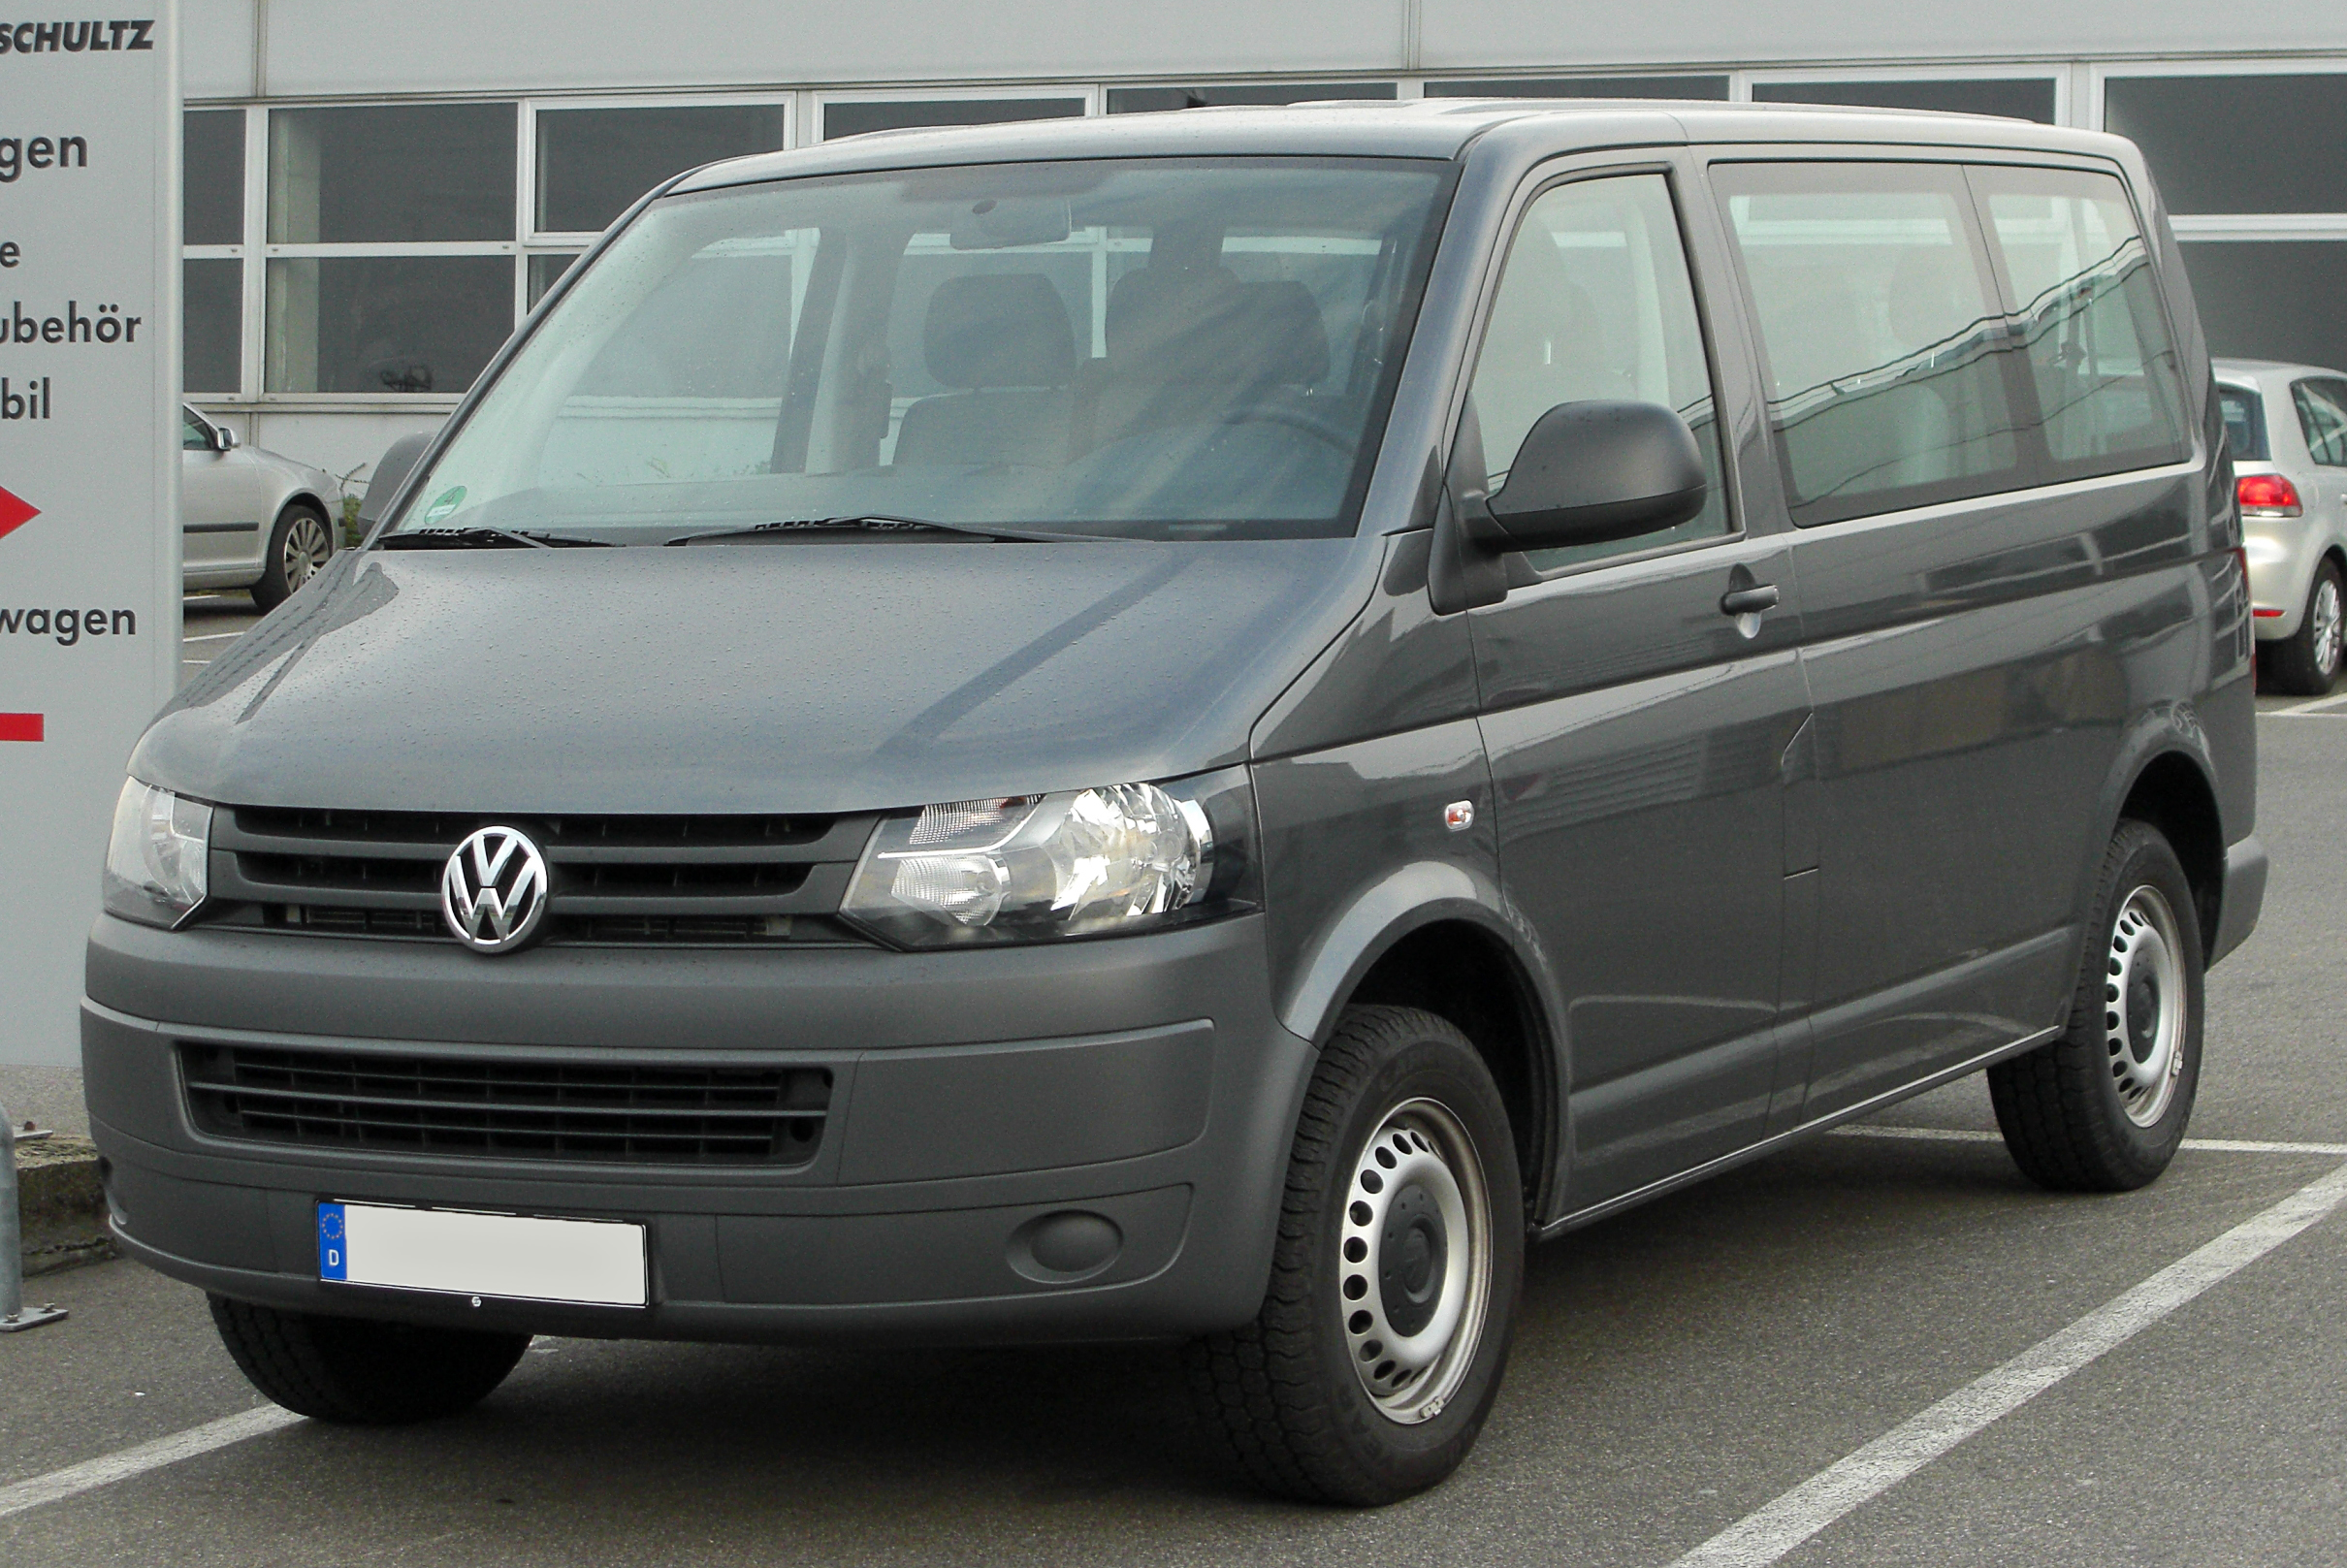 file vw transporter tdi t5 facelift front. Black Bedroom Furniture Sets. Home Design Ideas